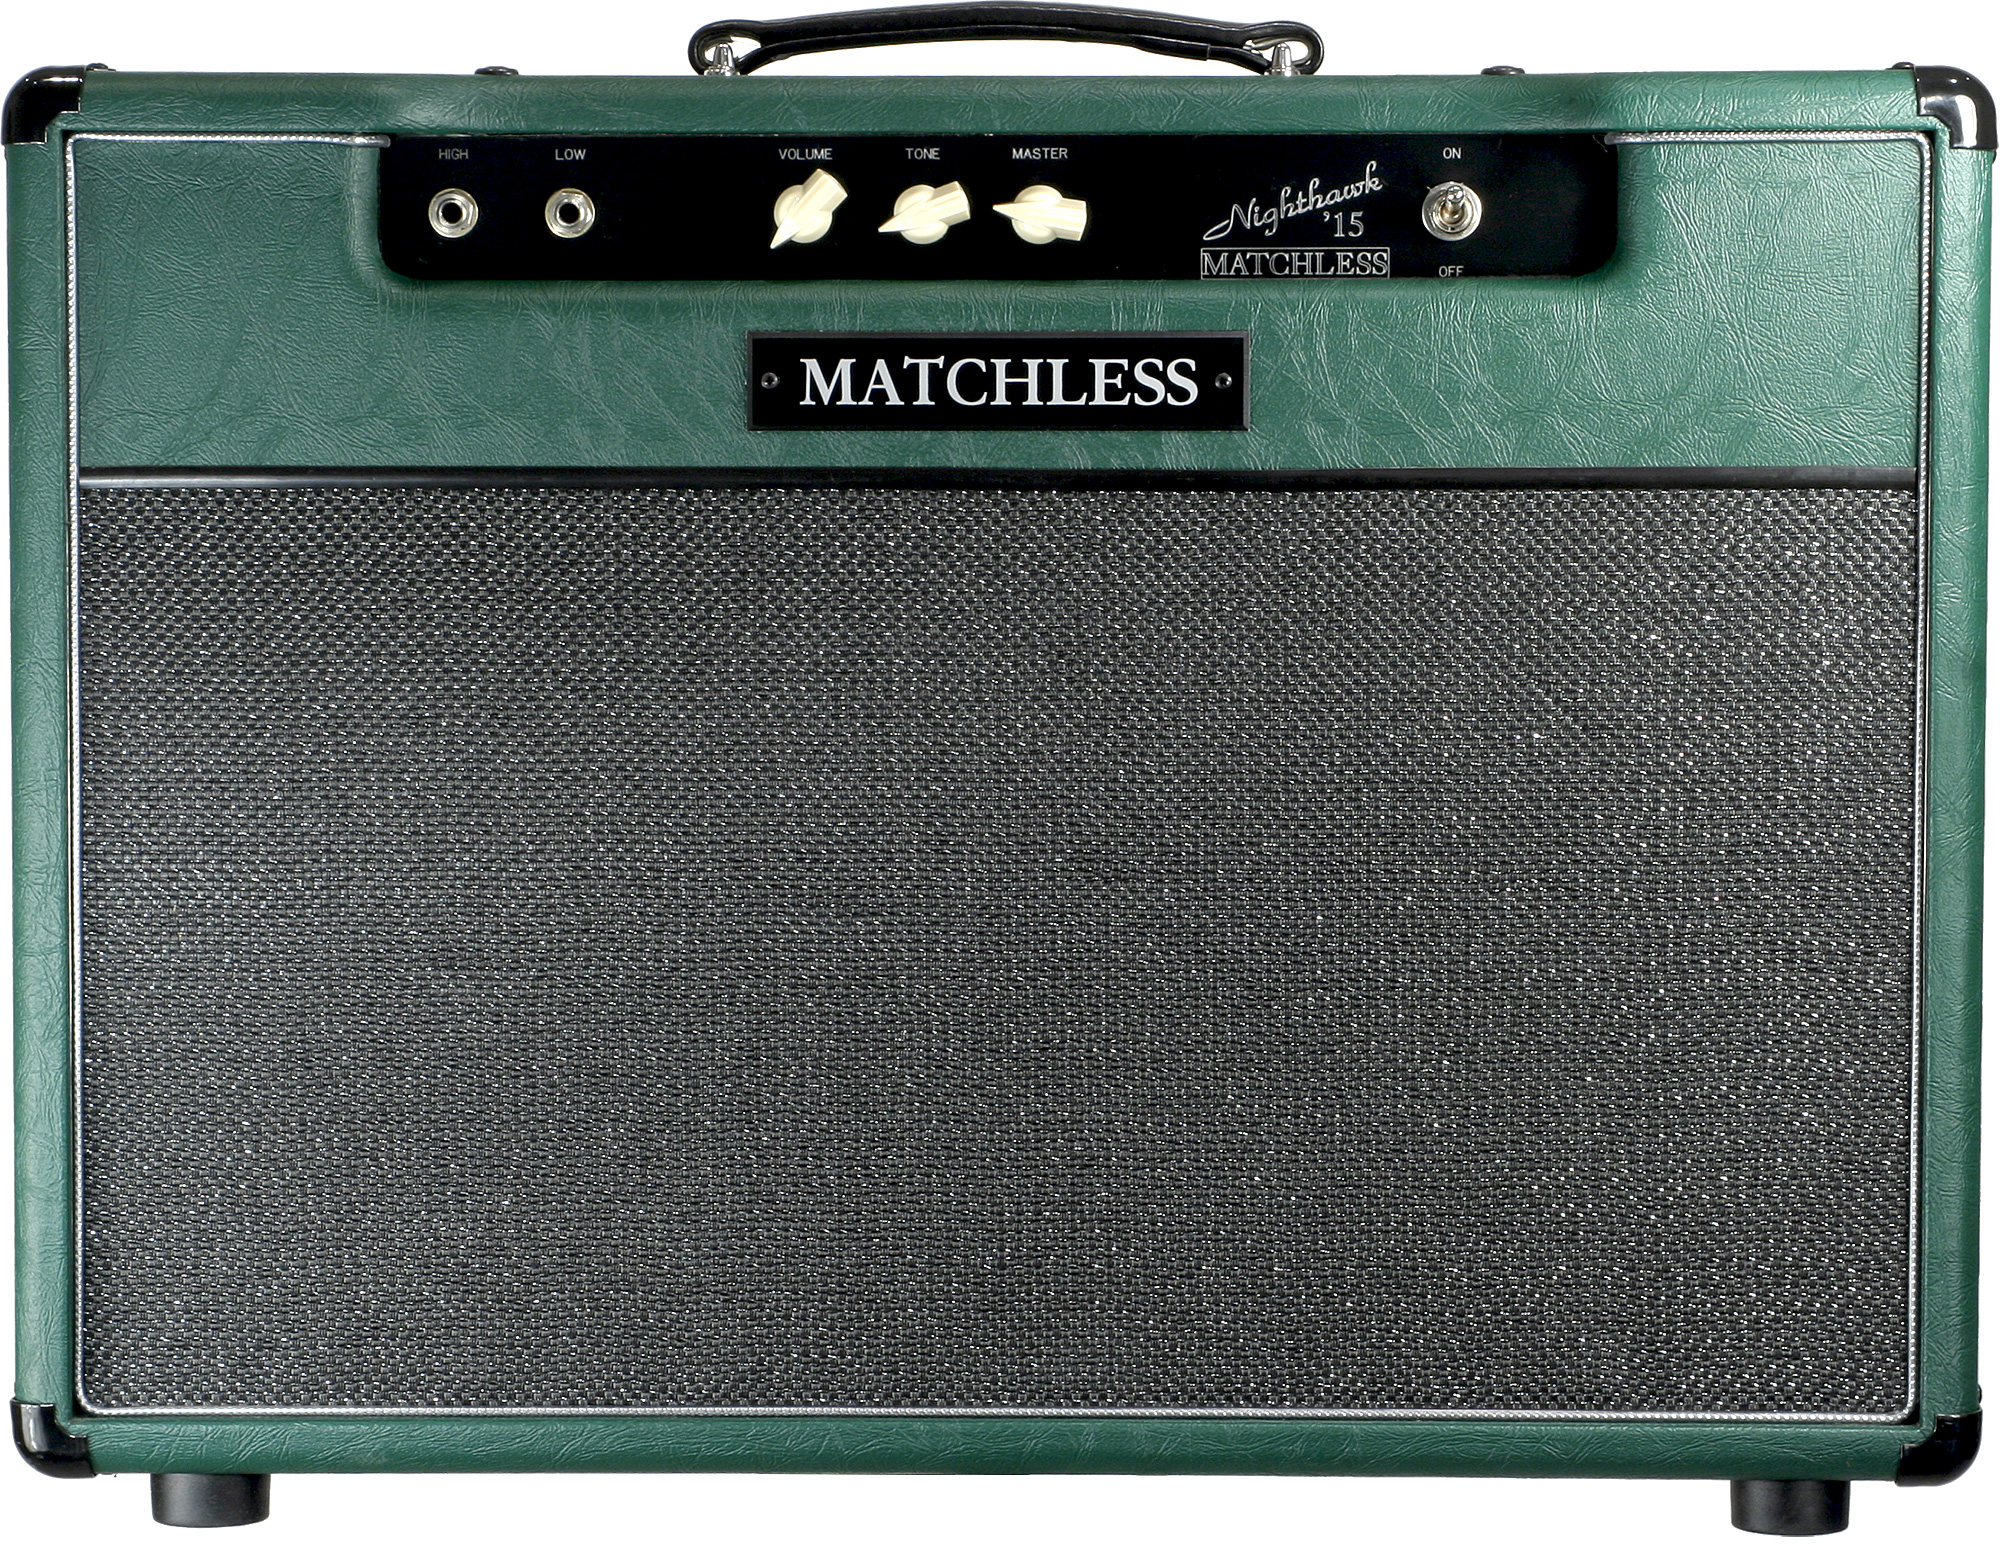 Valves for Matchless Nighthawk amplifier